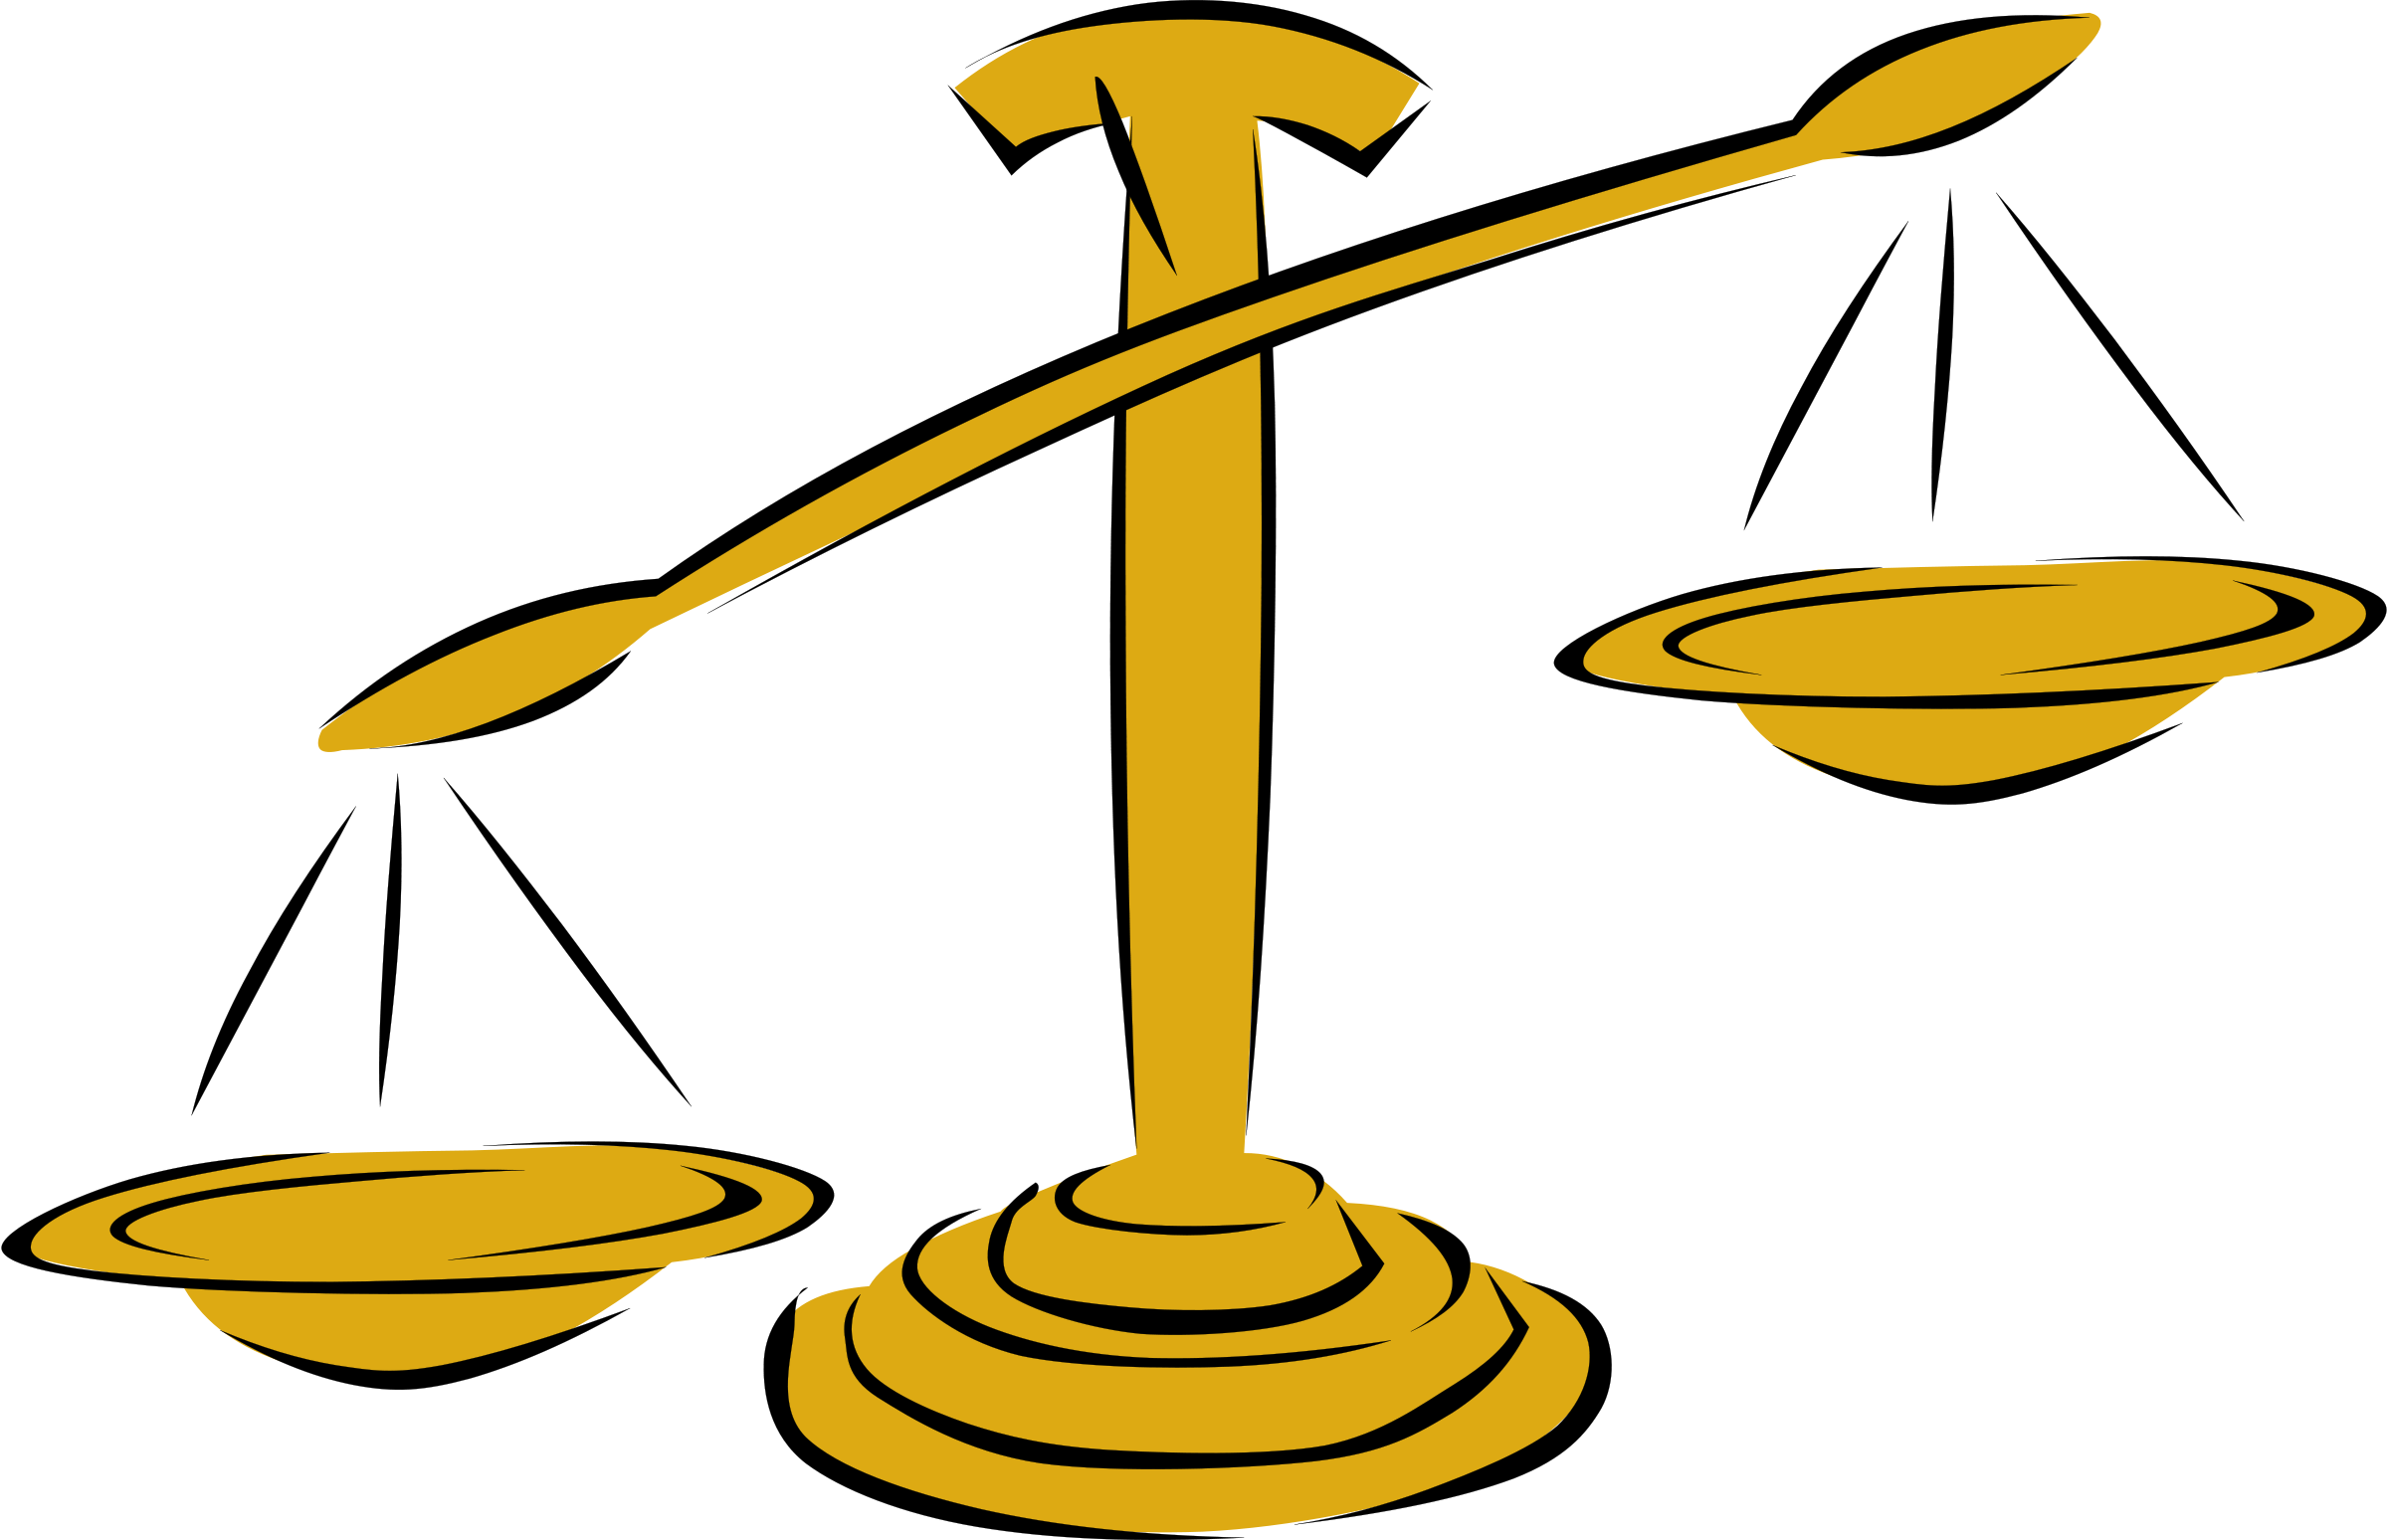 Scales clipart clip art. Balance scale bay